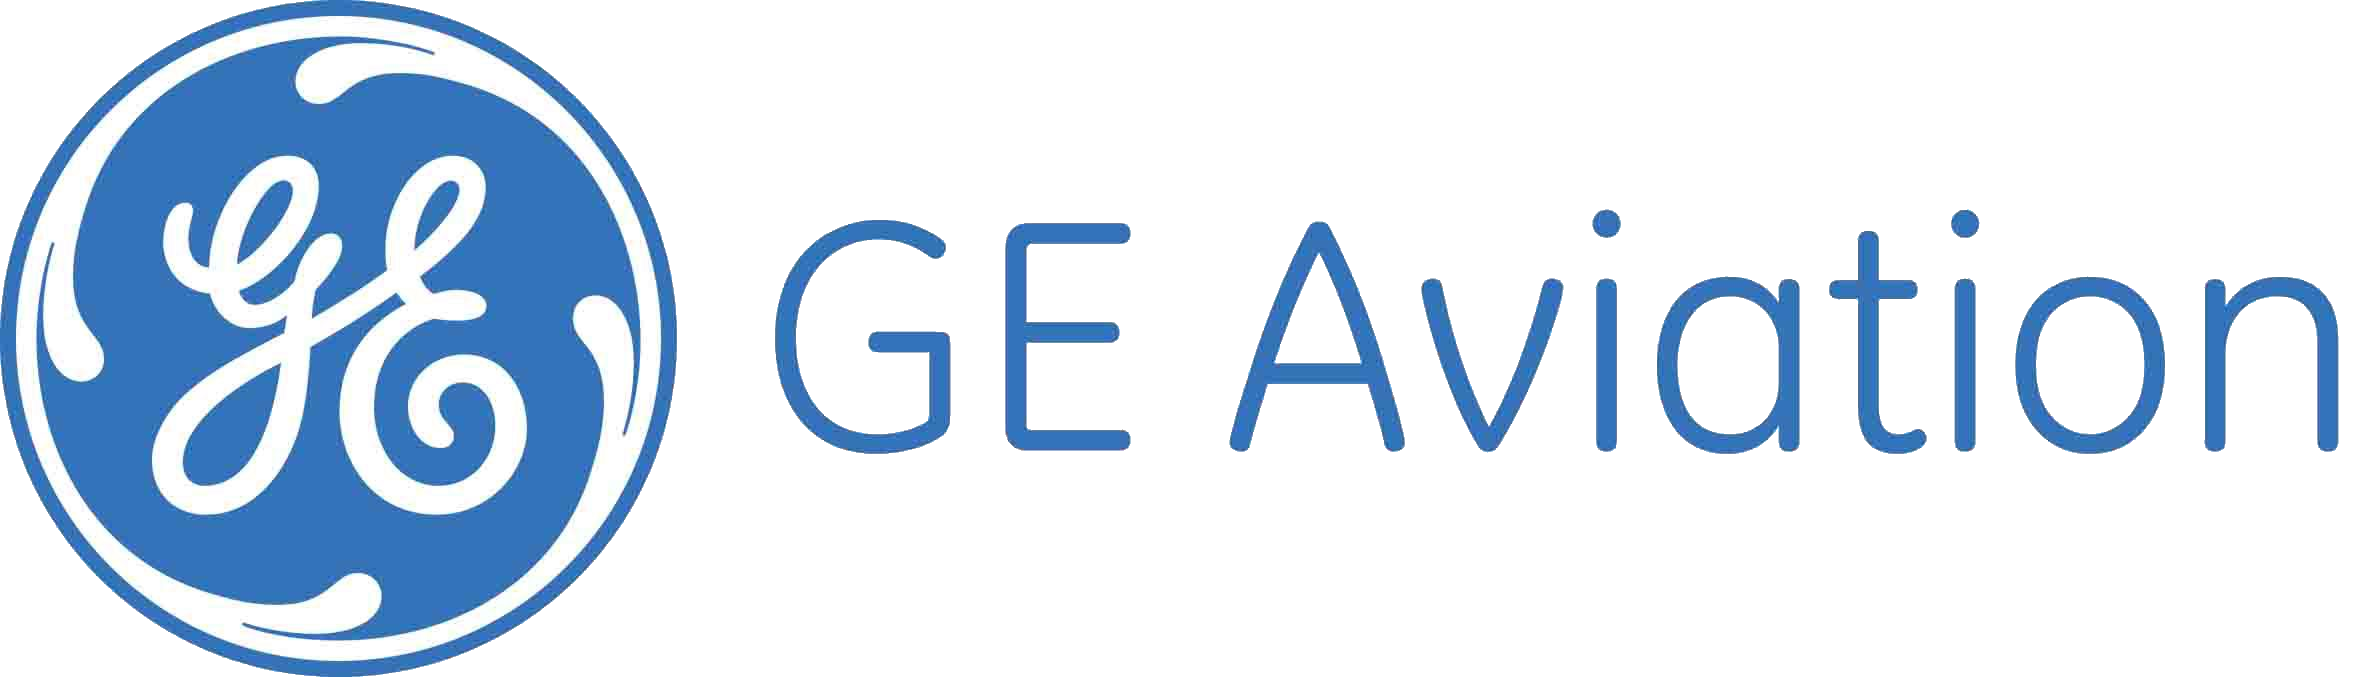 GE Aviation.png